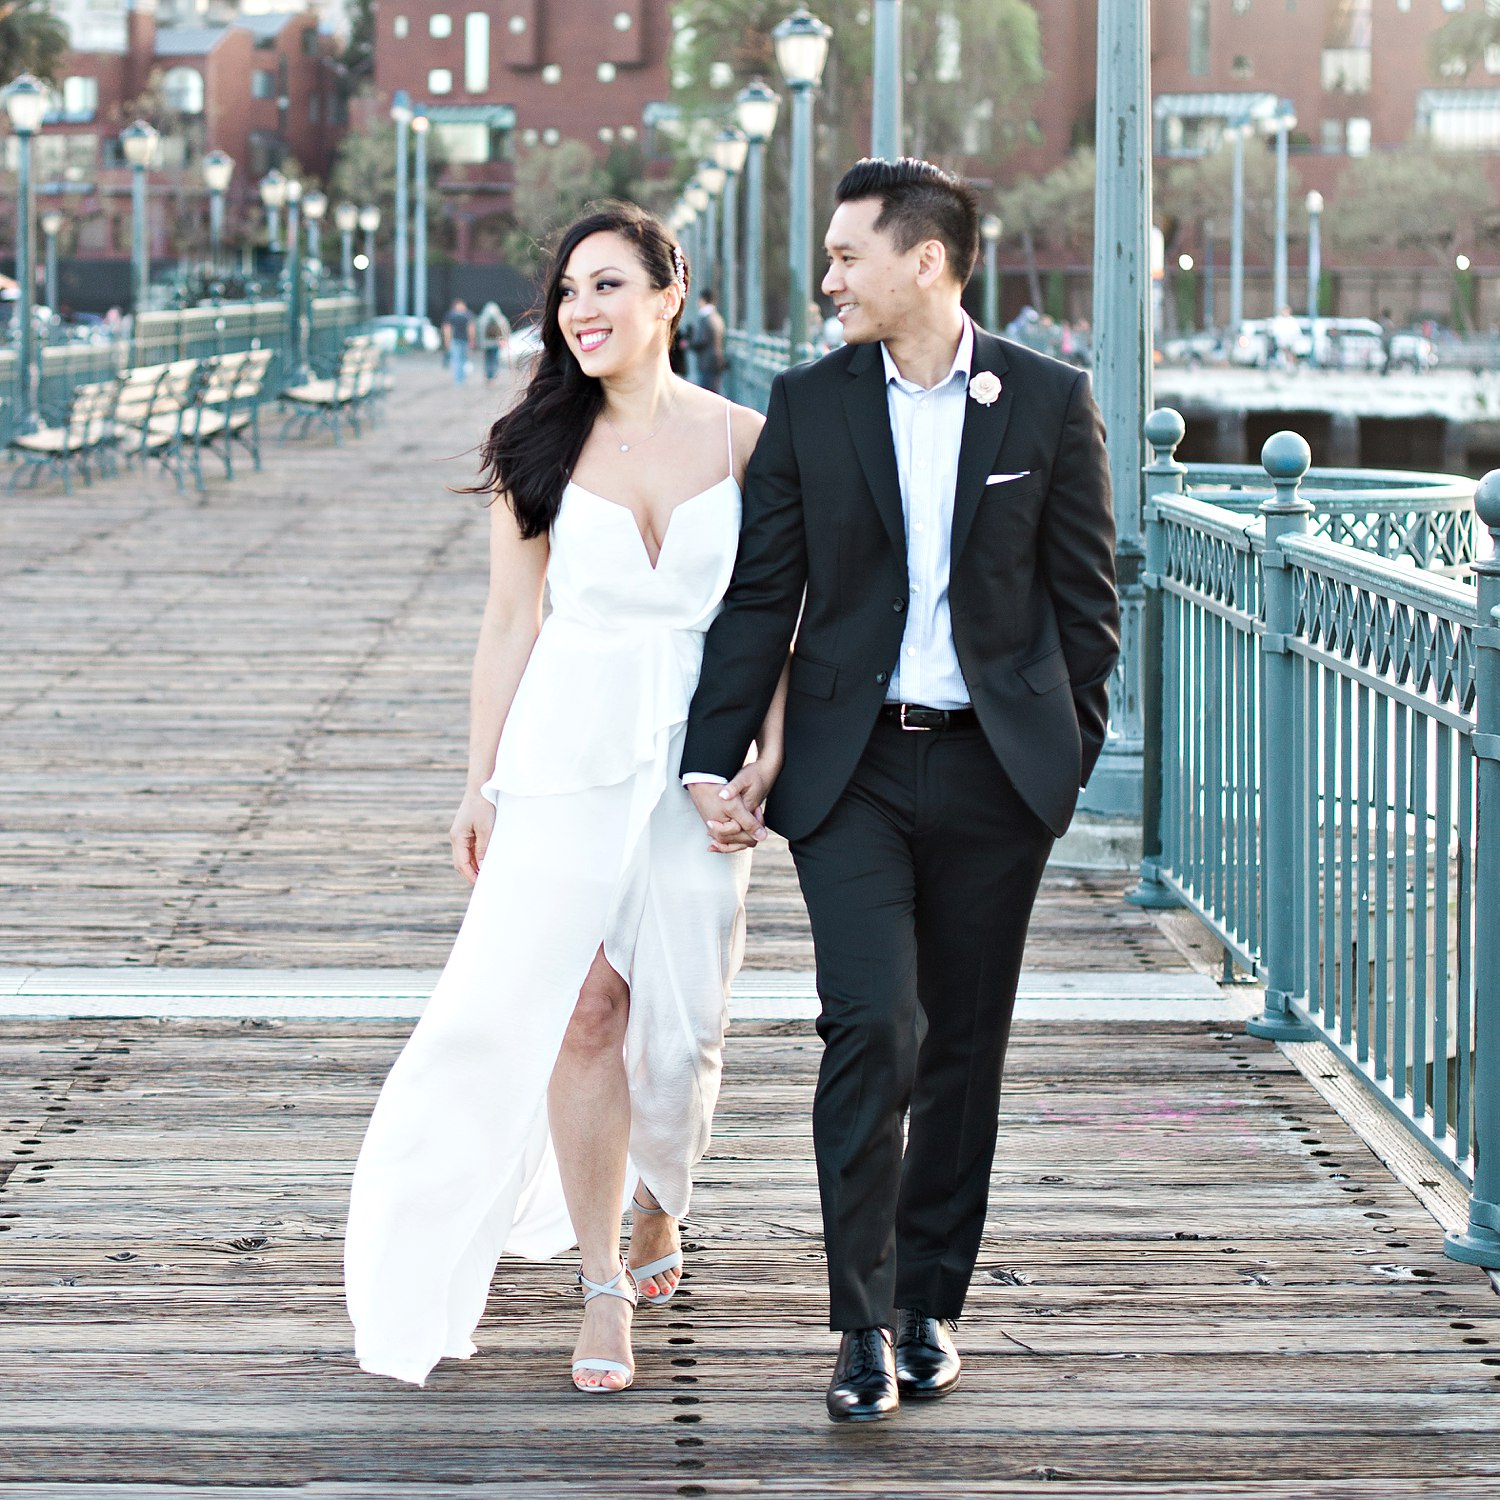 San Diego Wedding Photographer - Evelyn Molina_0003.jpg